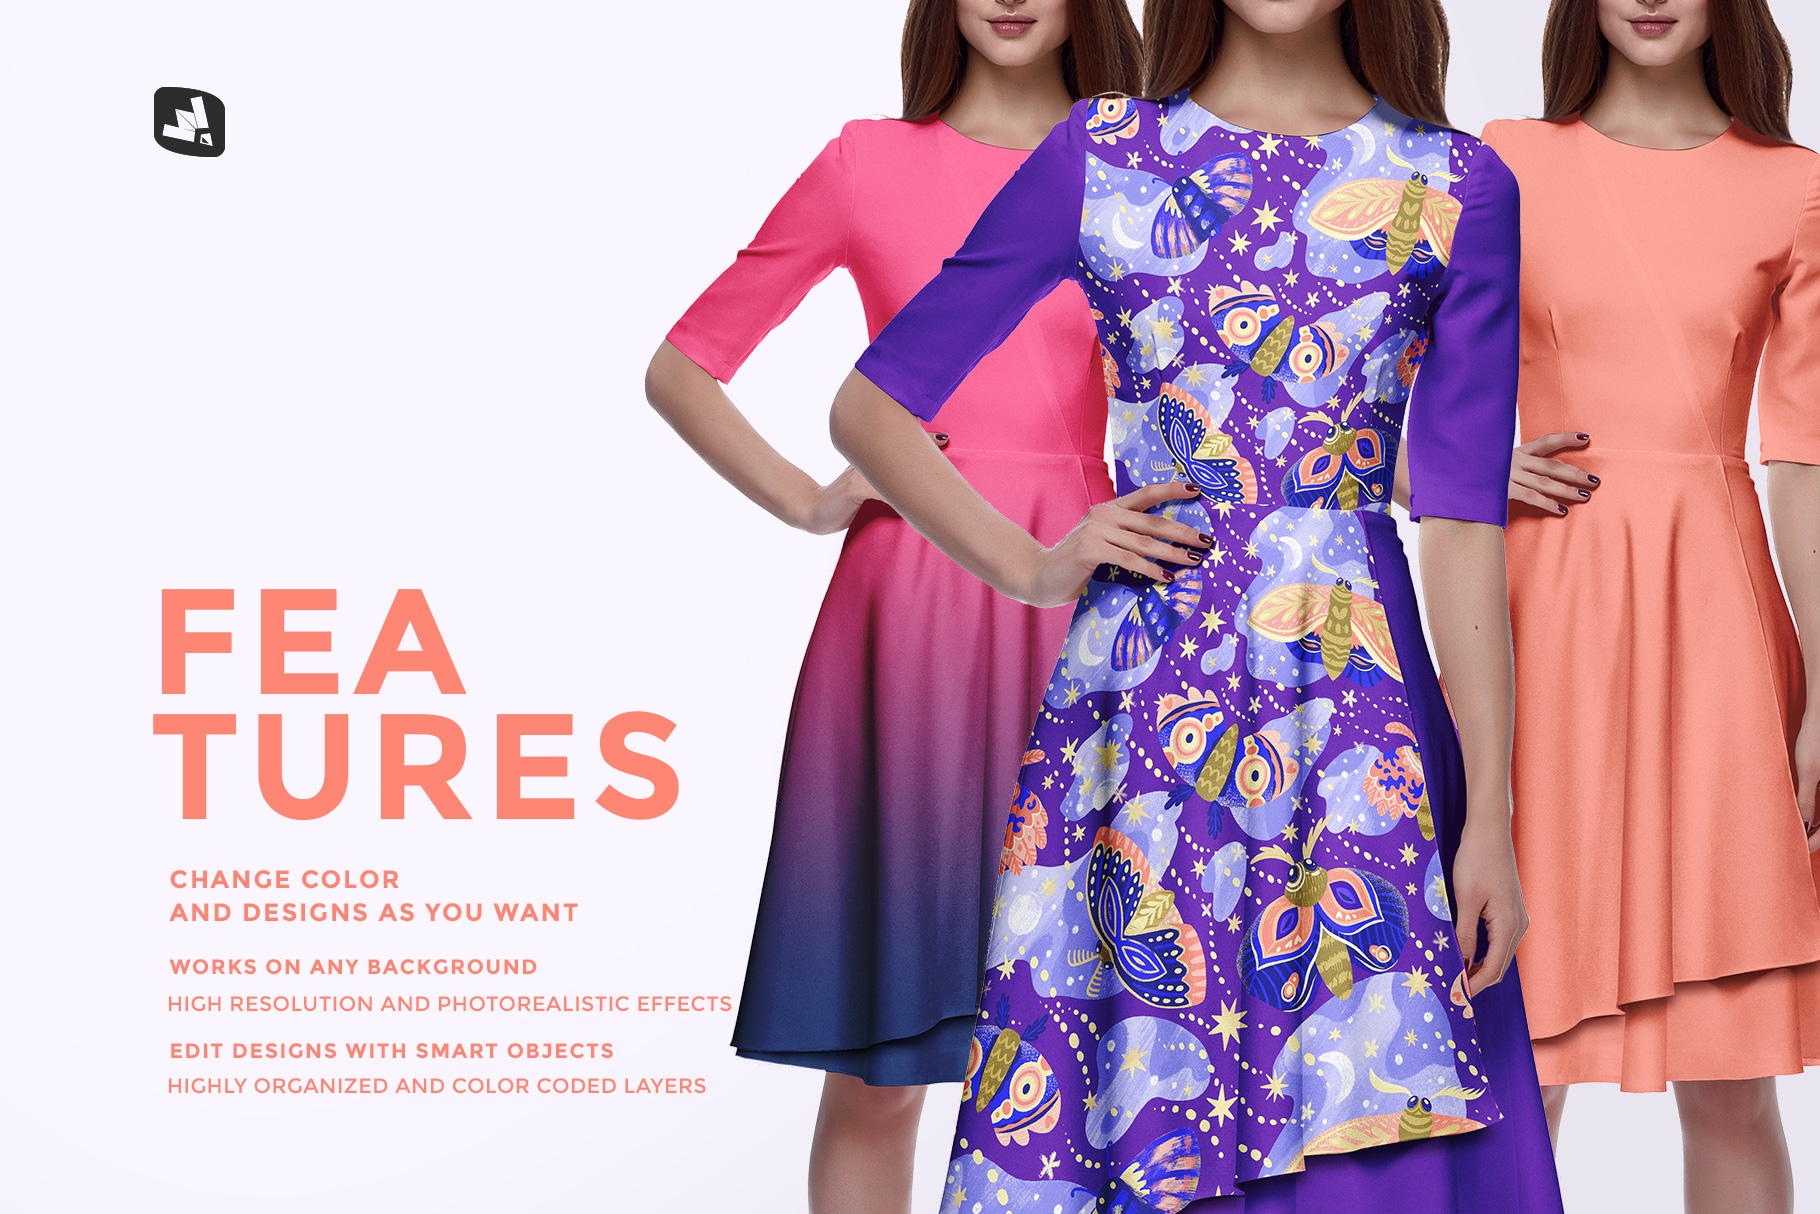 features of the female formal dress mockup